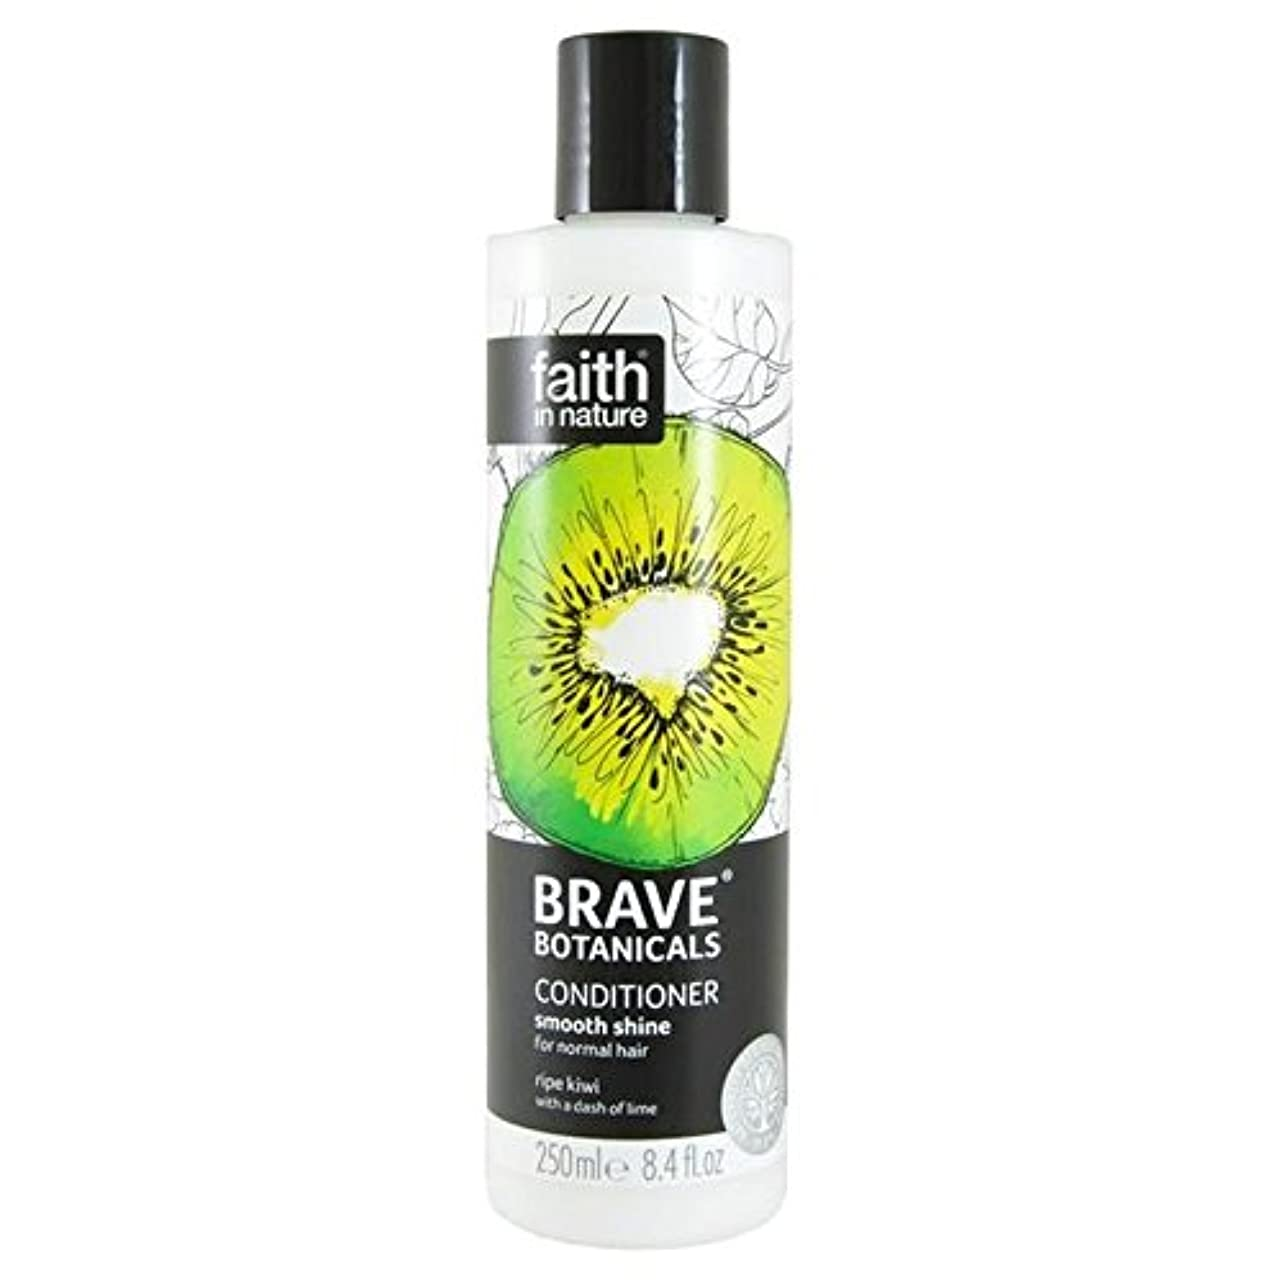 リフト格納アーサーBrave Botanicals Kiwi & Lime Smooth Shine Conditioner 250ml (Pack of 4) - (Faith In Nature) 勇敢な植物キウイ&ライムなめらかな輝...